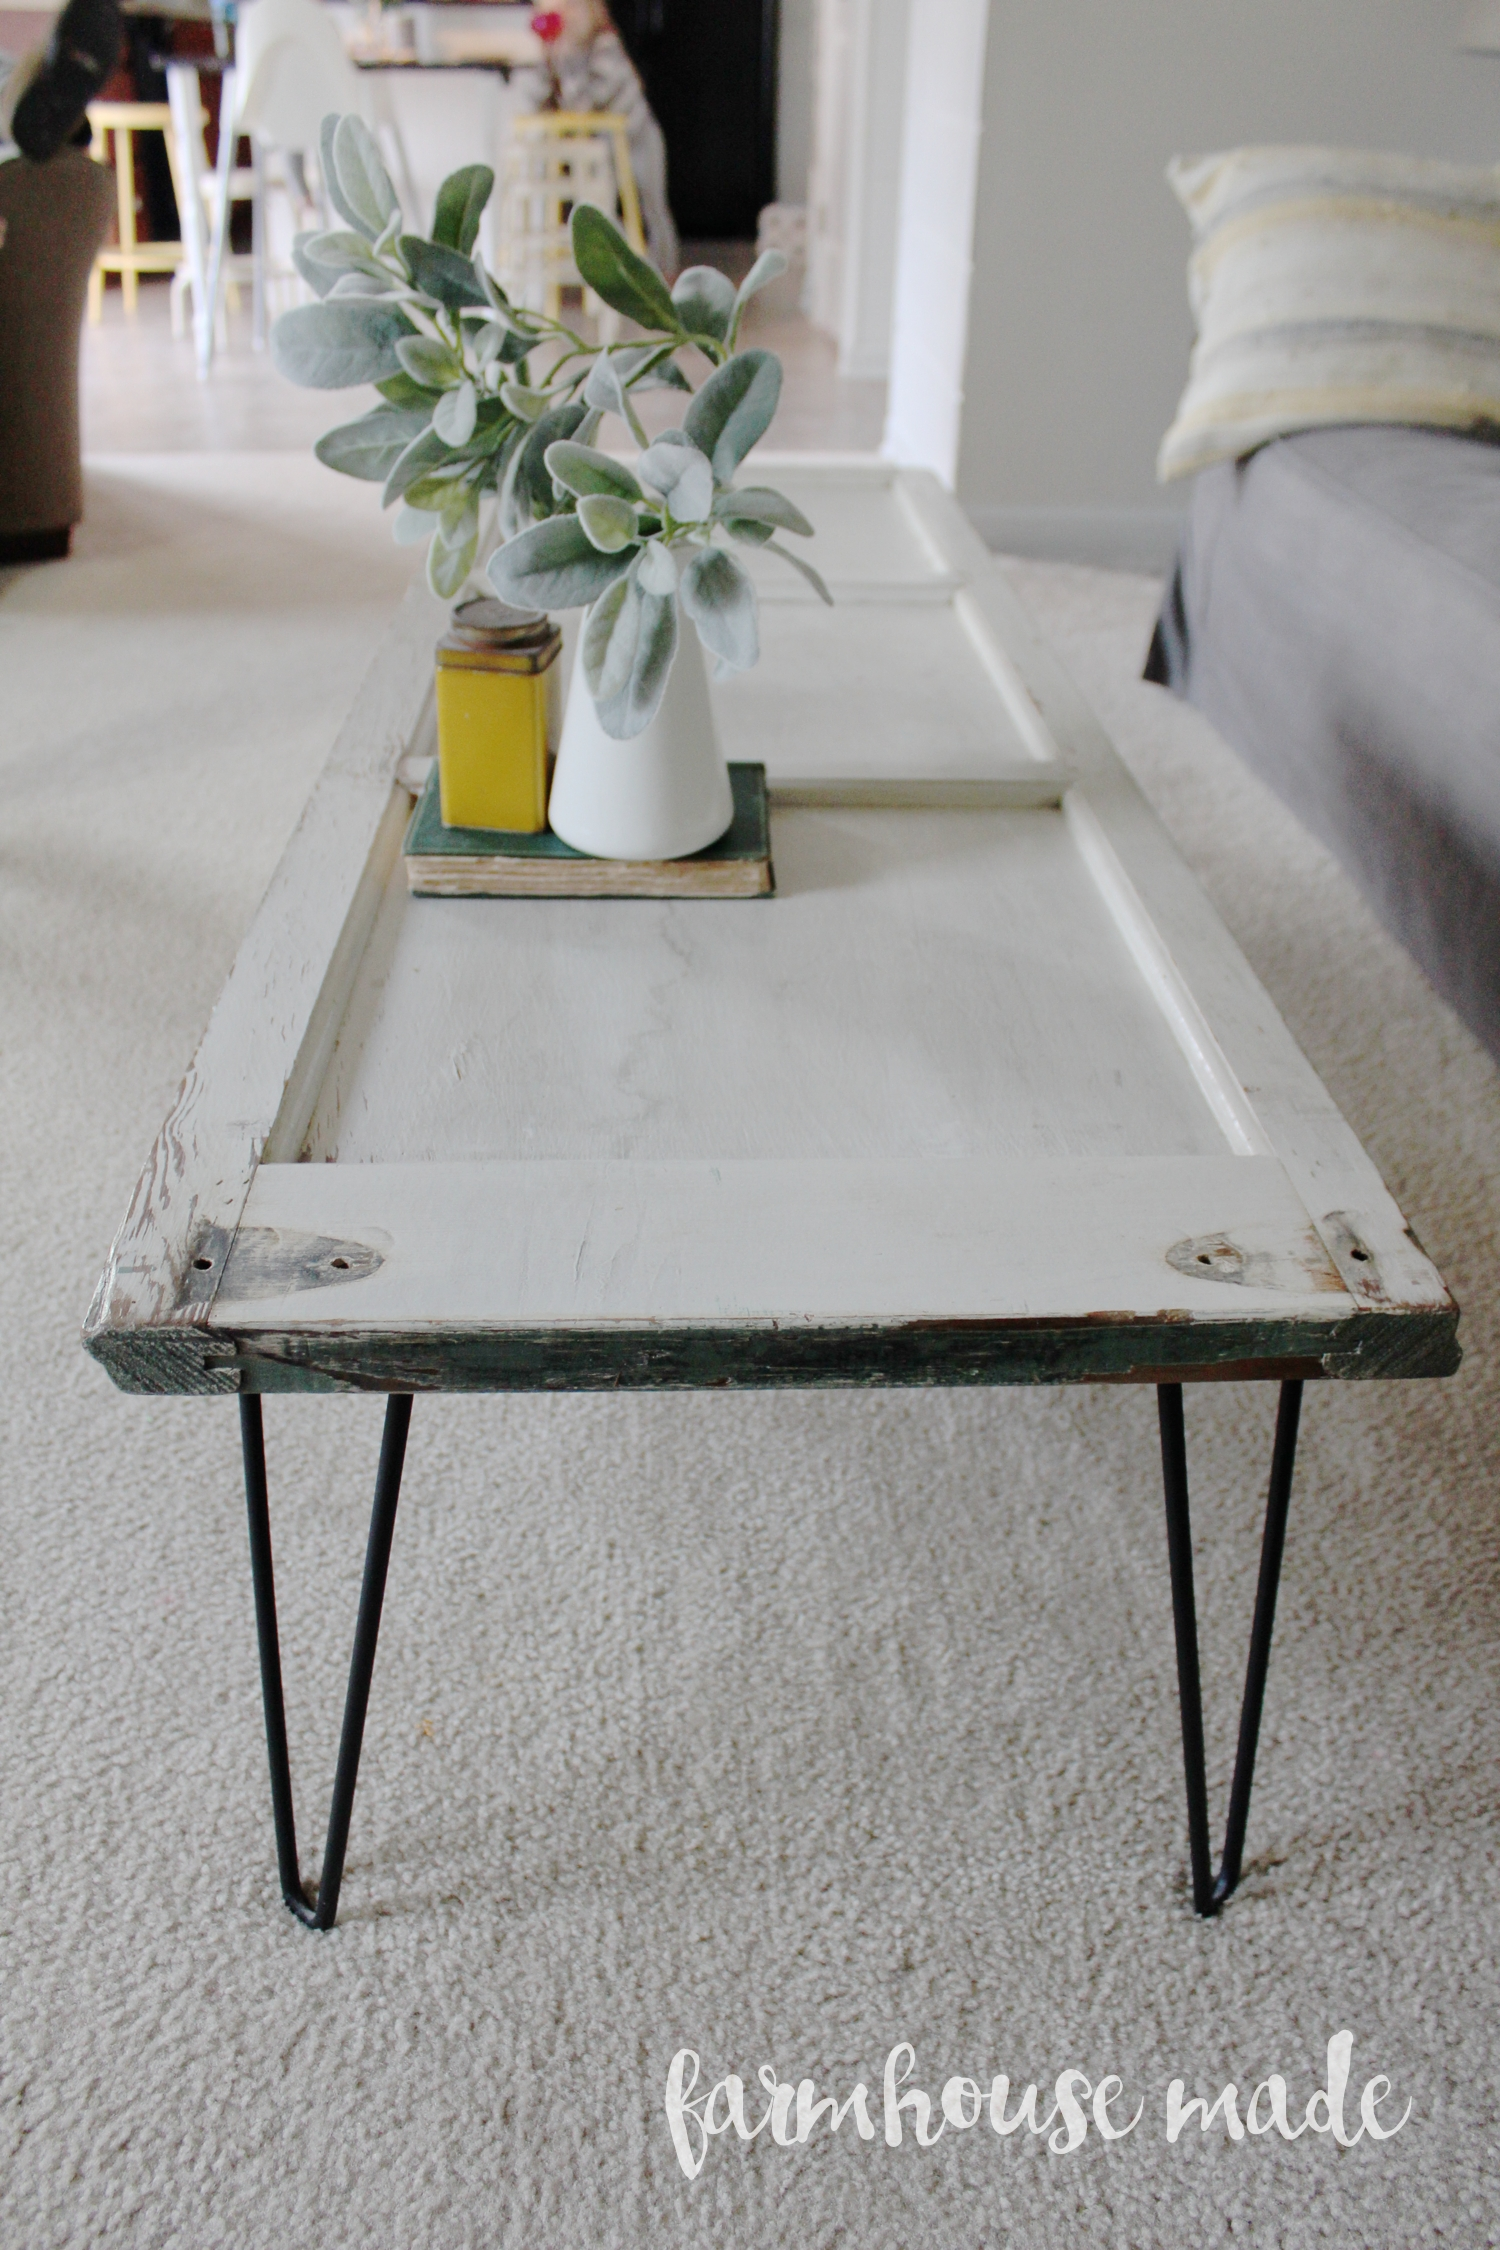 Top 5 Diy 39 S To Add Farmhouse Style Farmhouse Made